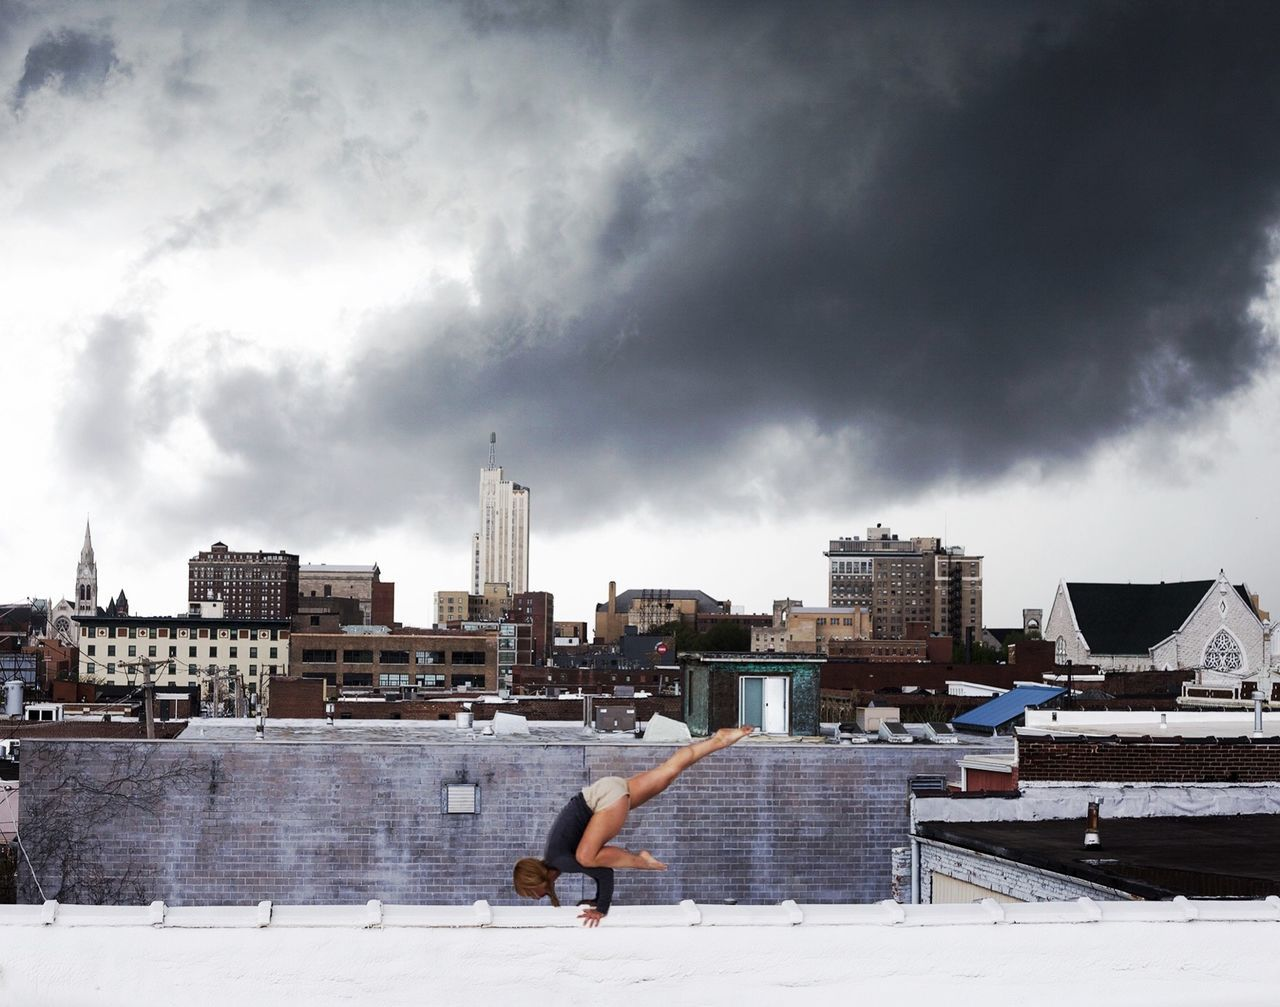 Woman doing yoga on rooftop against cloudy sky